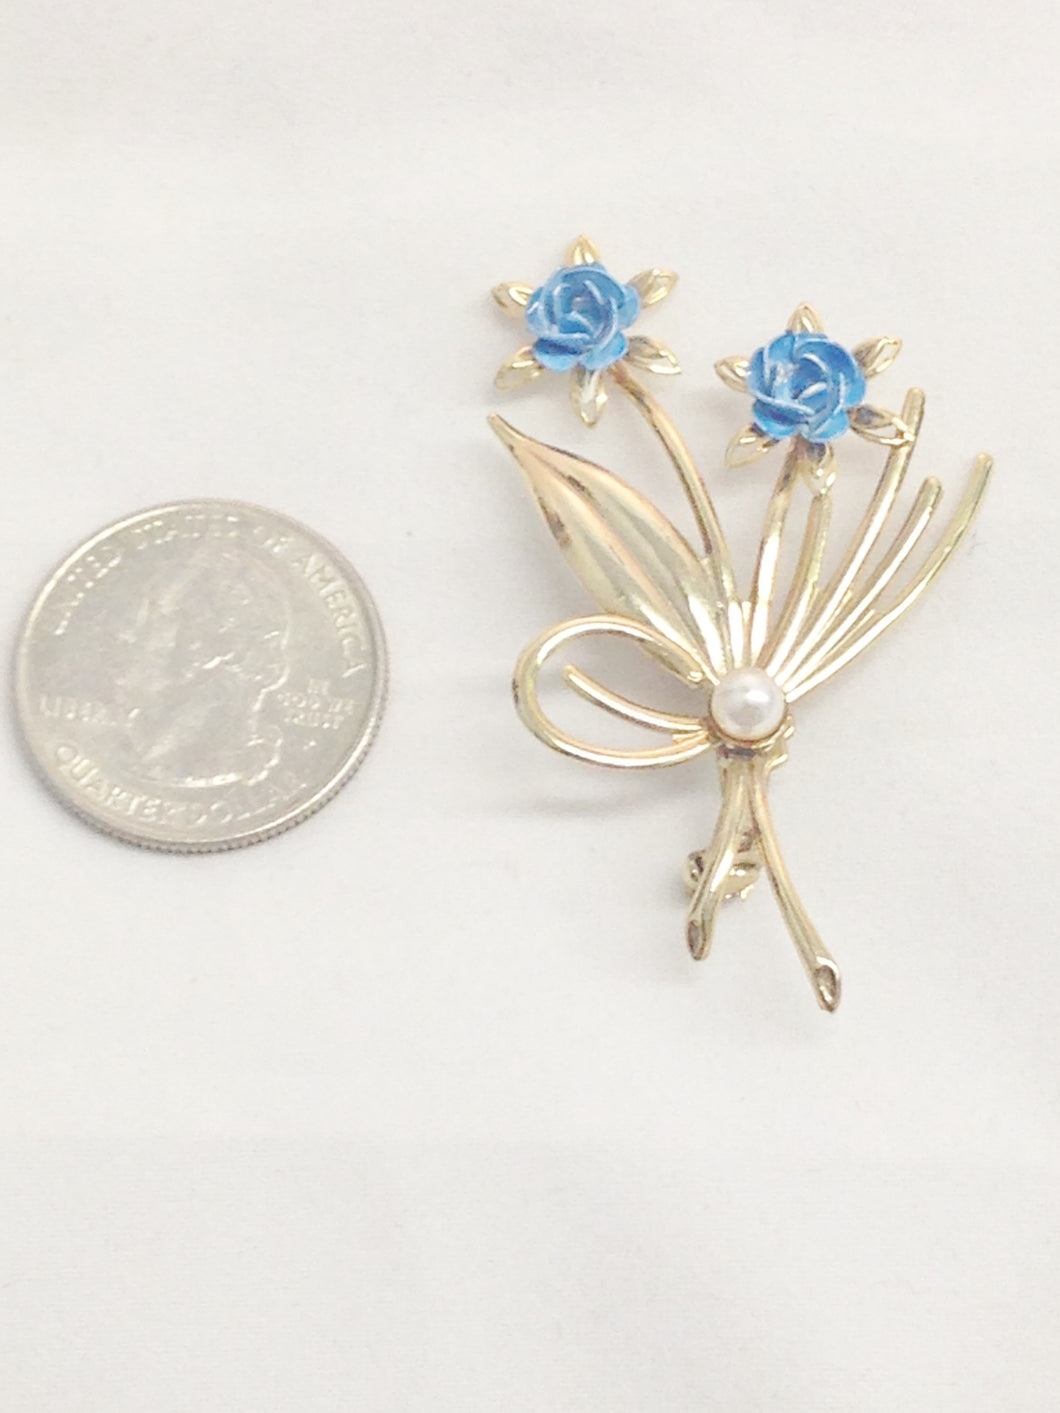 Gold Tone Blue Flower Bouquet Brooch Pin www.hersandhistreasures.com/collections/vintage-jewelry